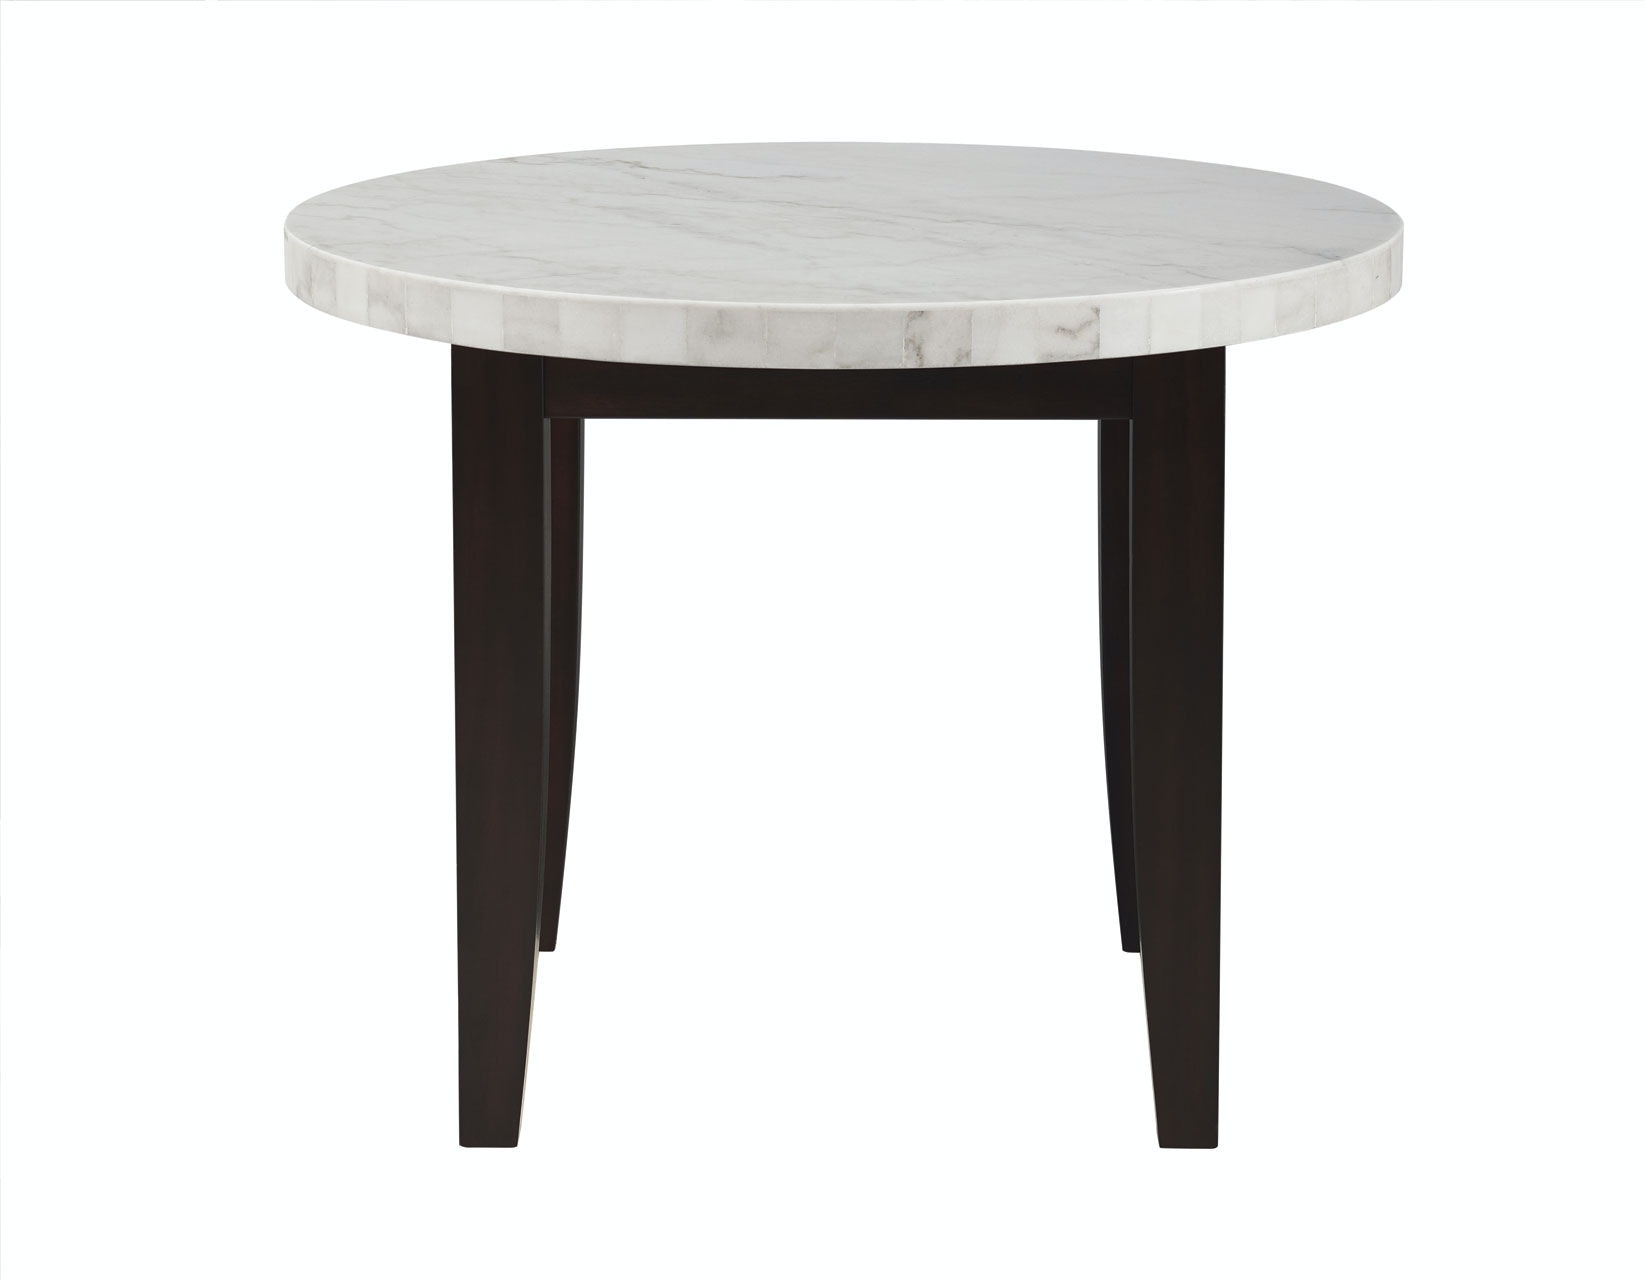 Steve Silver Francis Round White Marble Top FC600MT